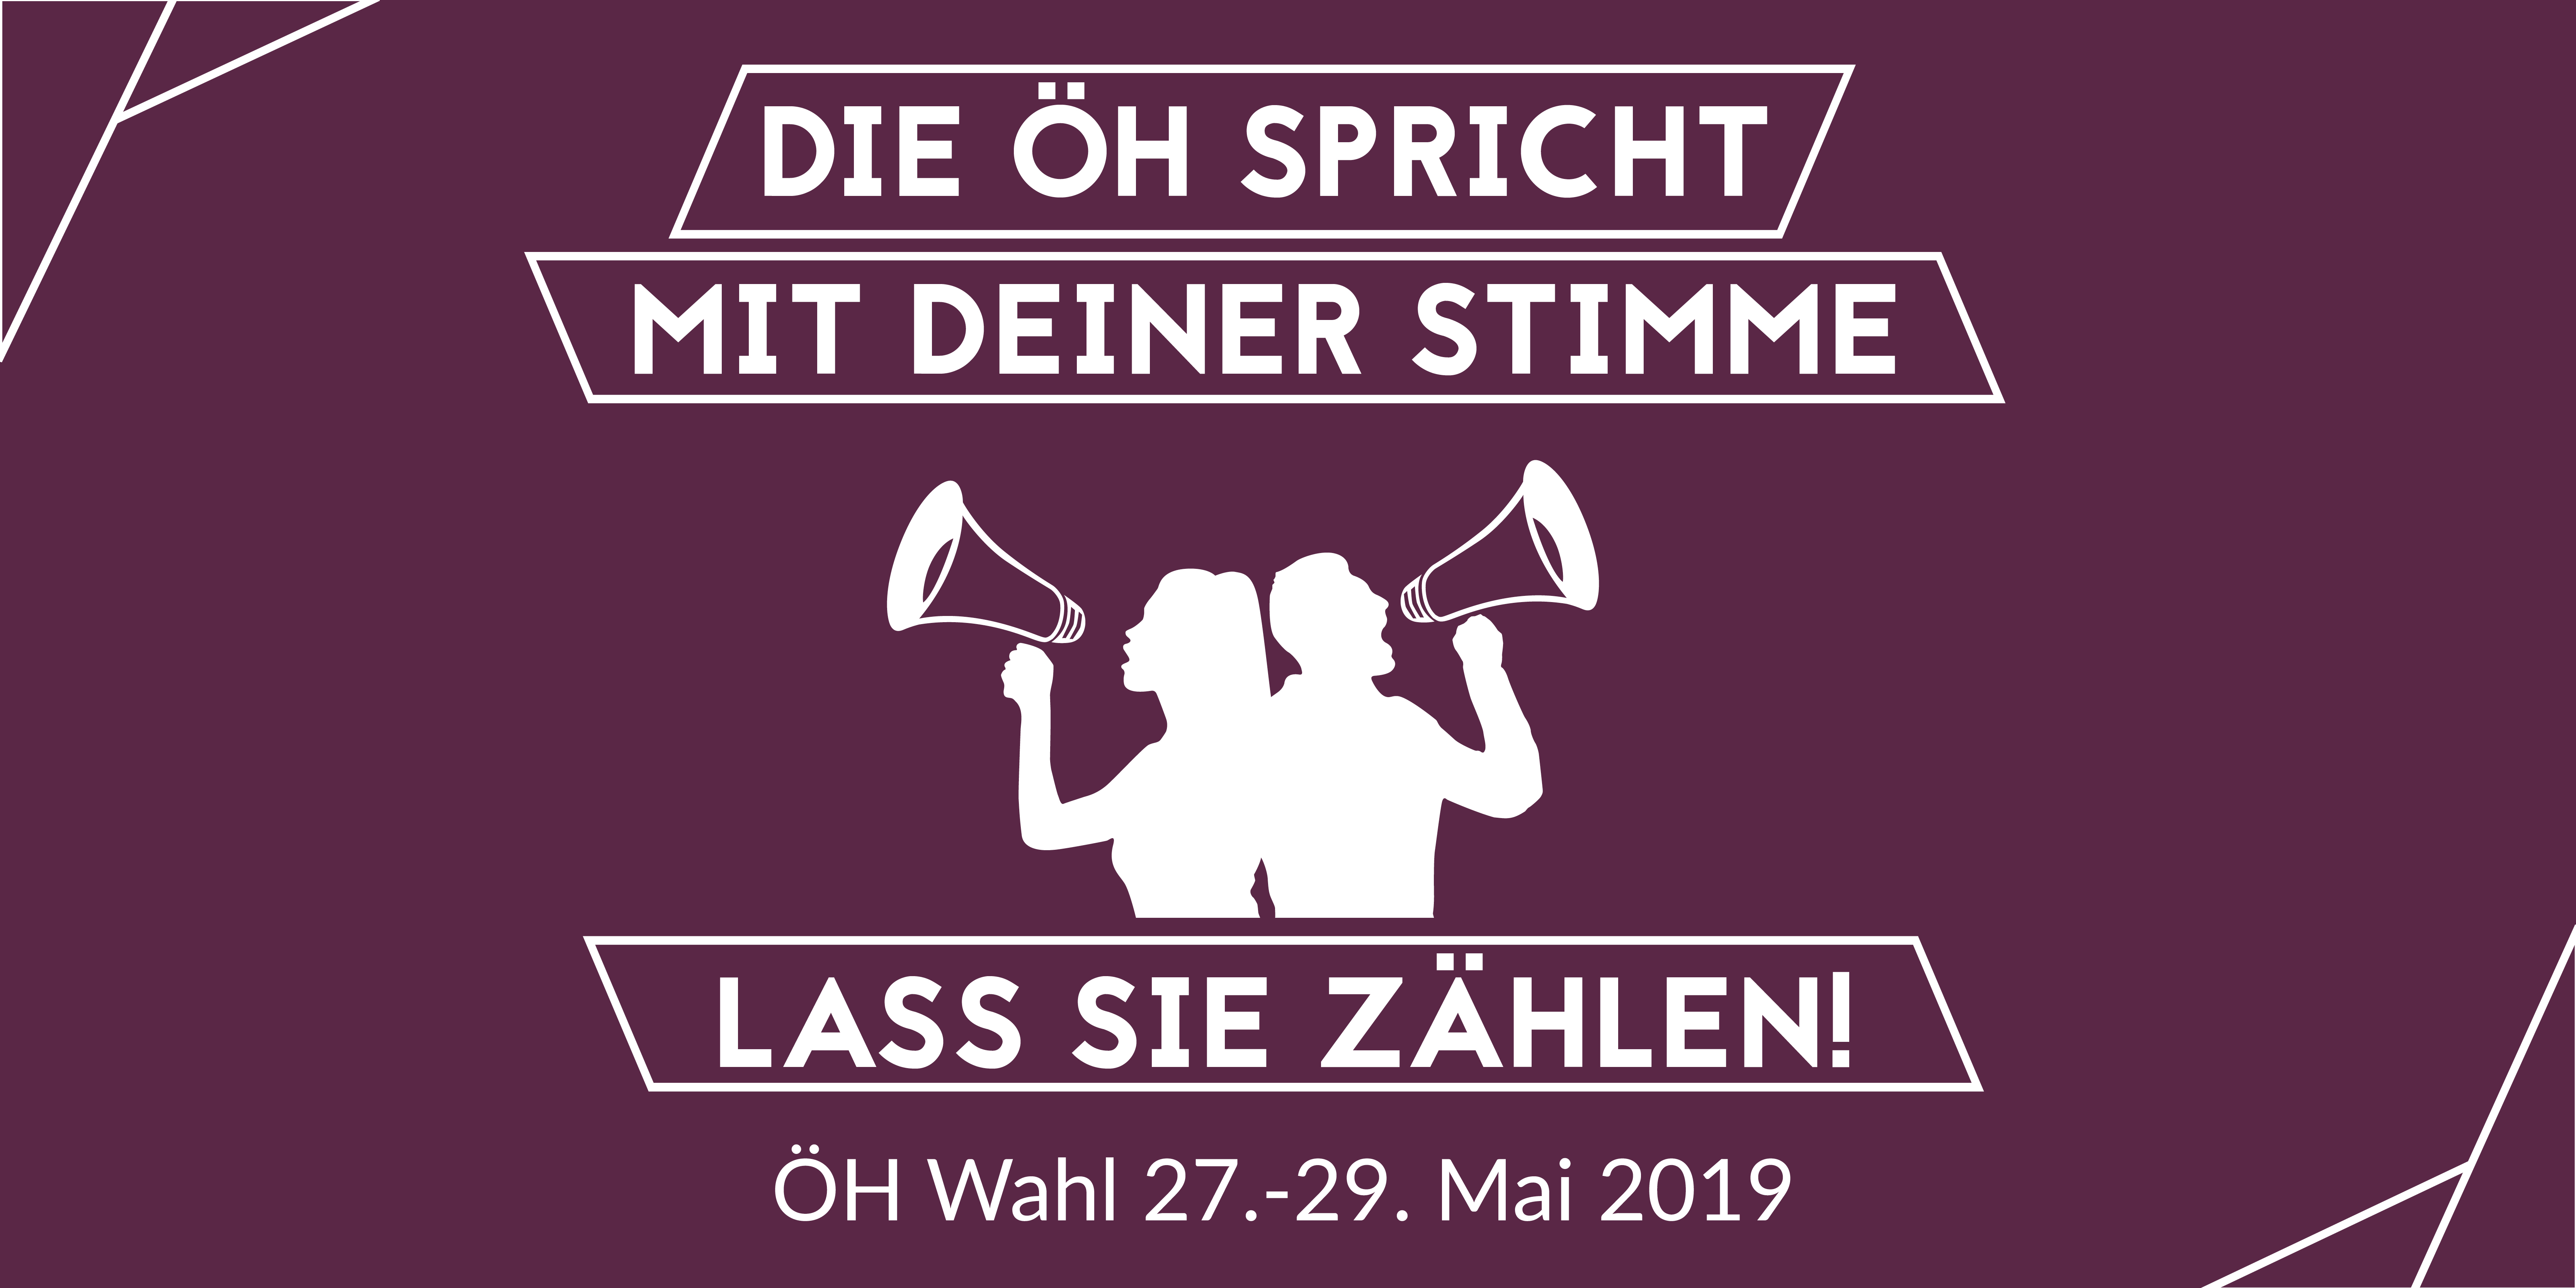 oeh-wahl